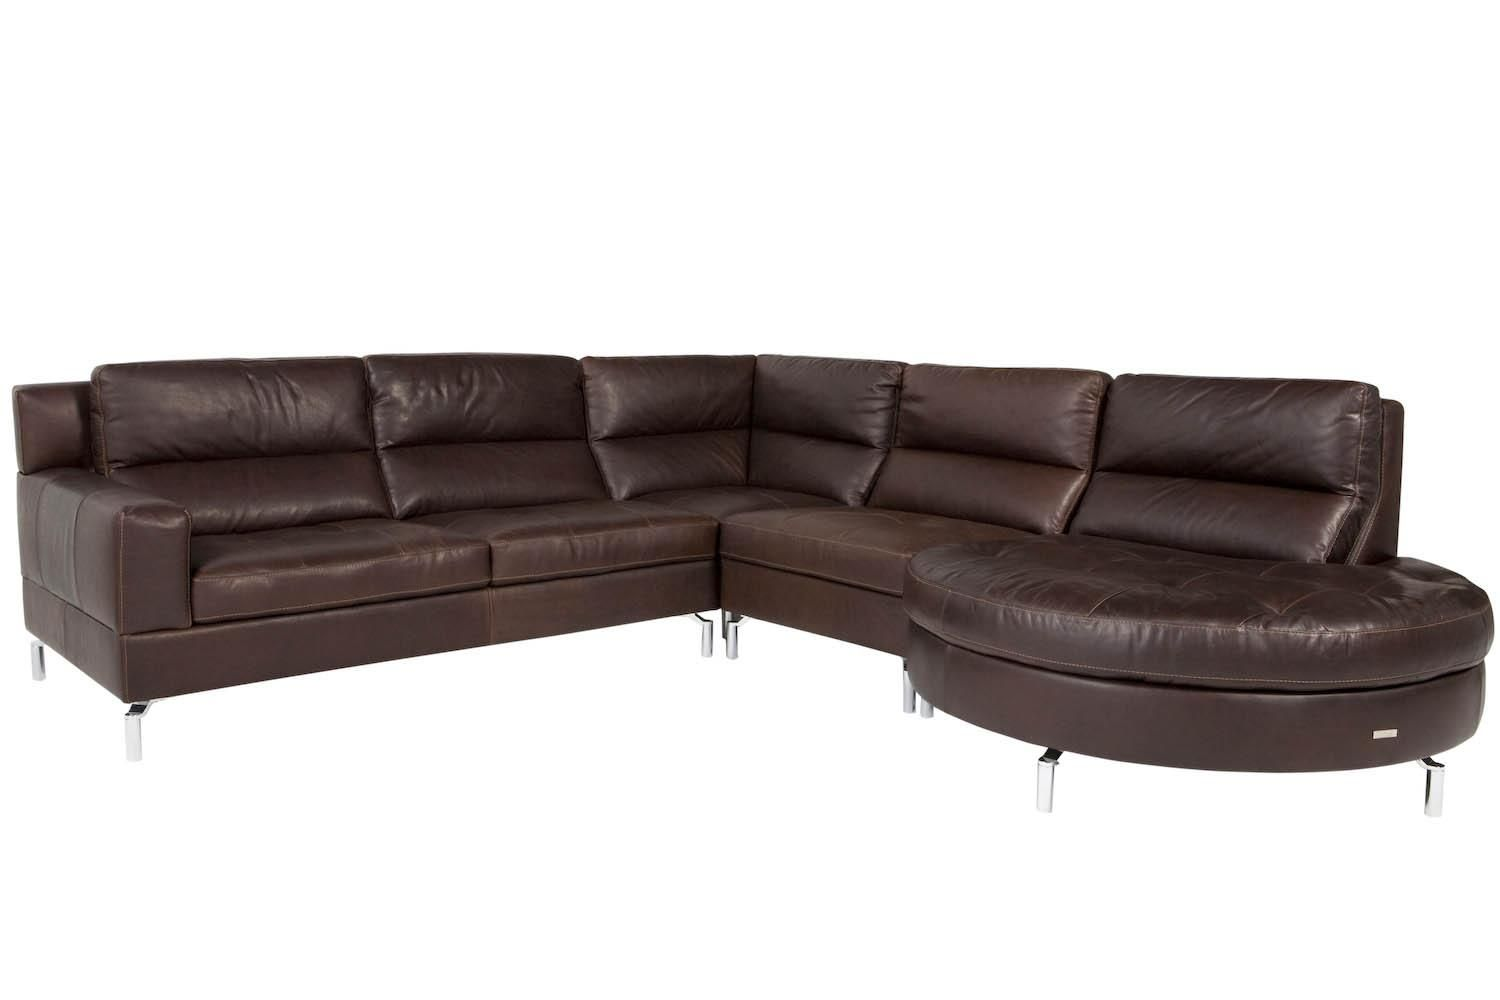 Couches And Sofas About Sofas Leather Corner Sofas Cheap  # Timothy Hutton Muebles